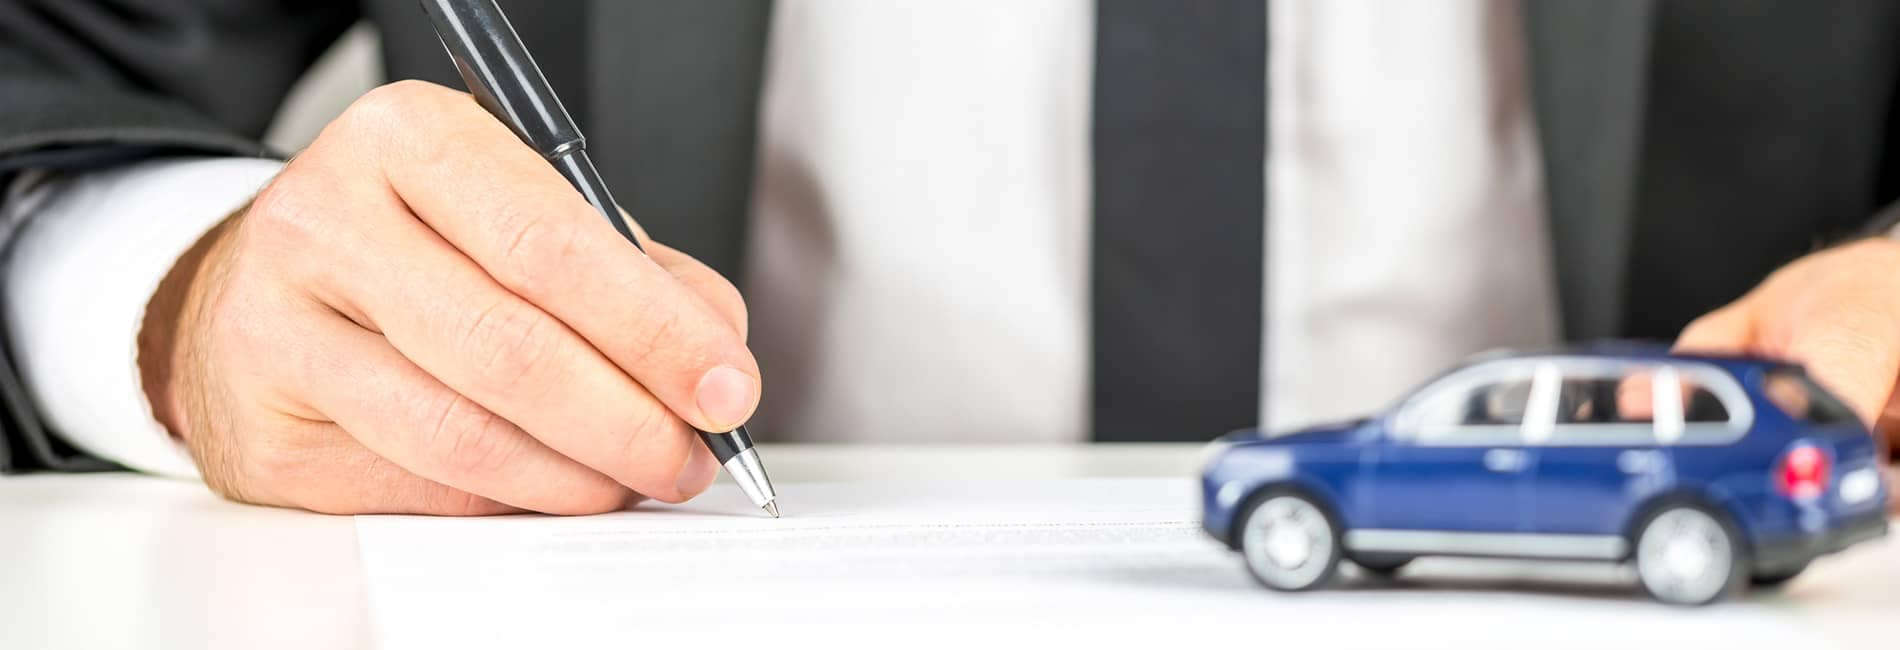 person holding a pen filling out paperwork